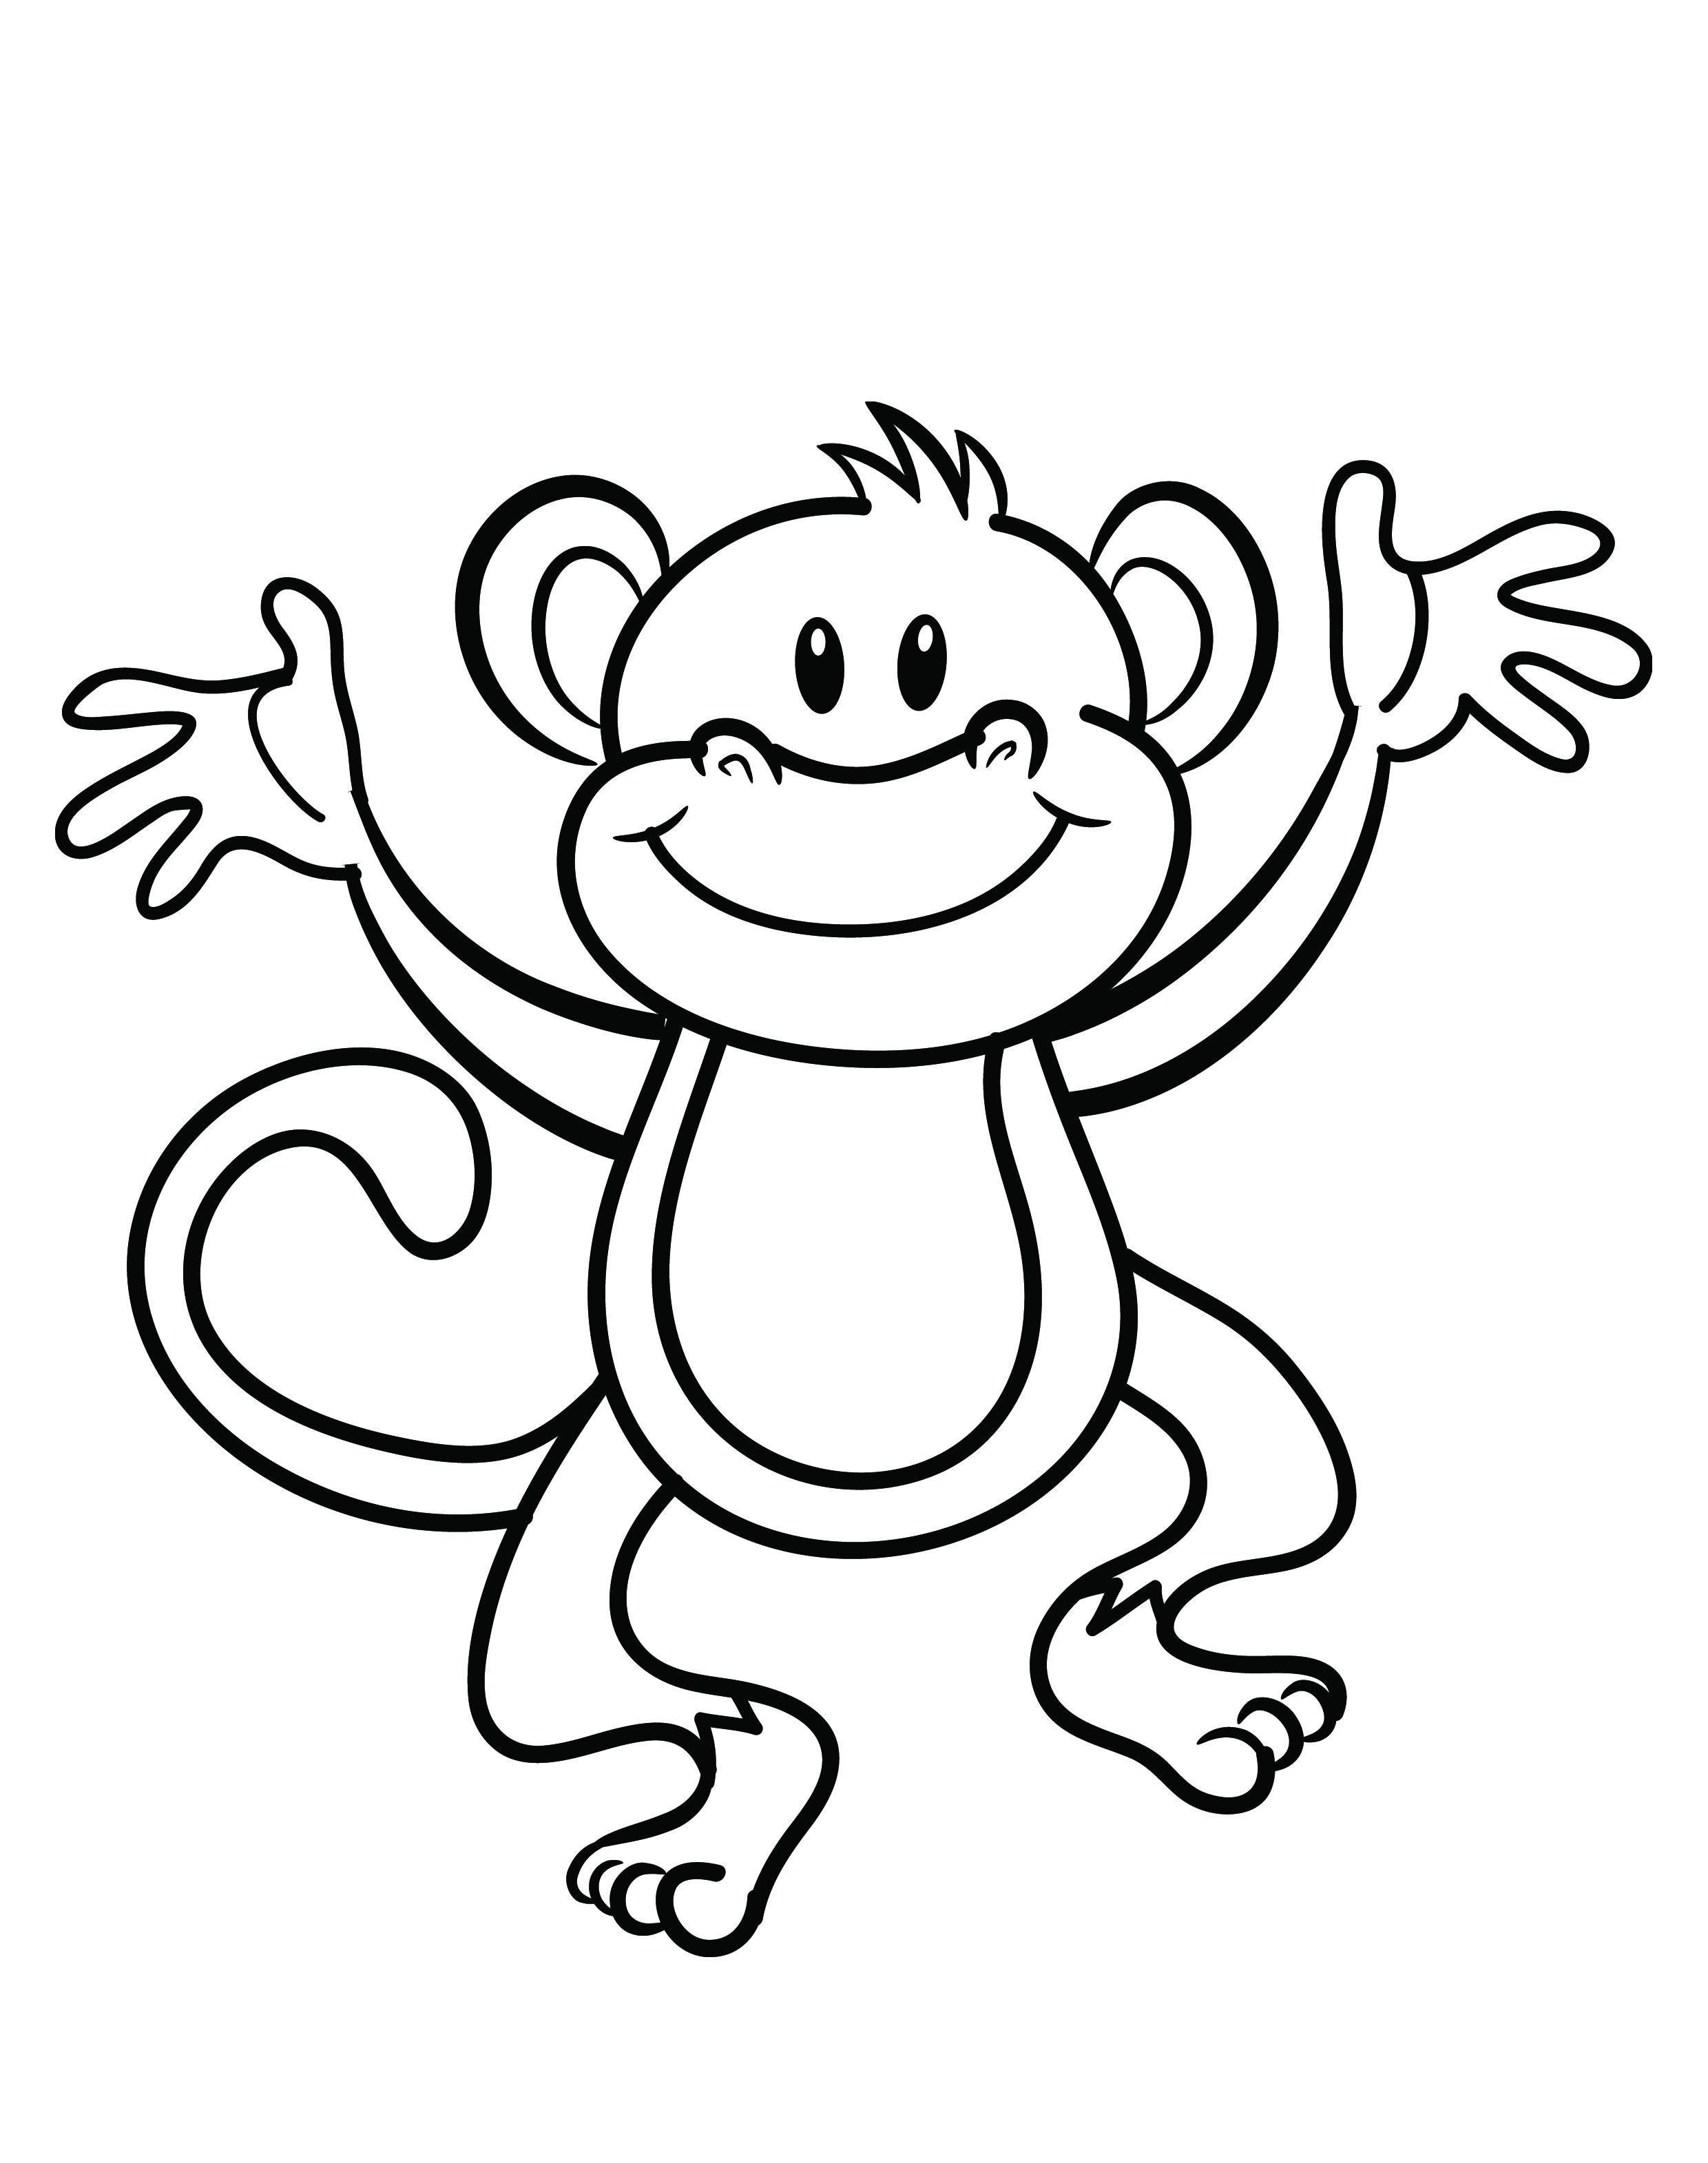 monkey coloring free printable monkey coloring page cj 1st birthday monkey coloring